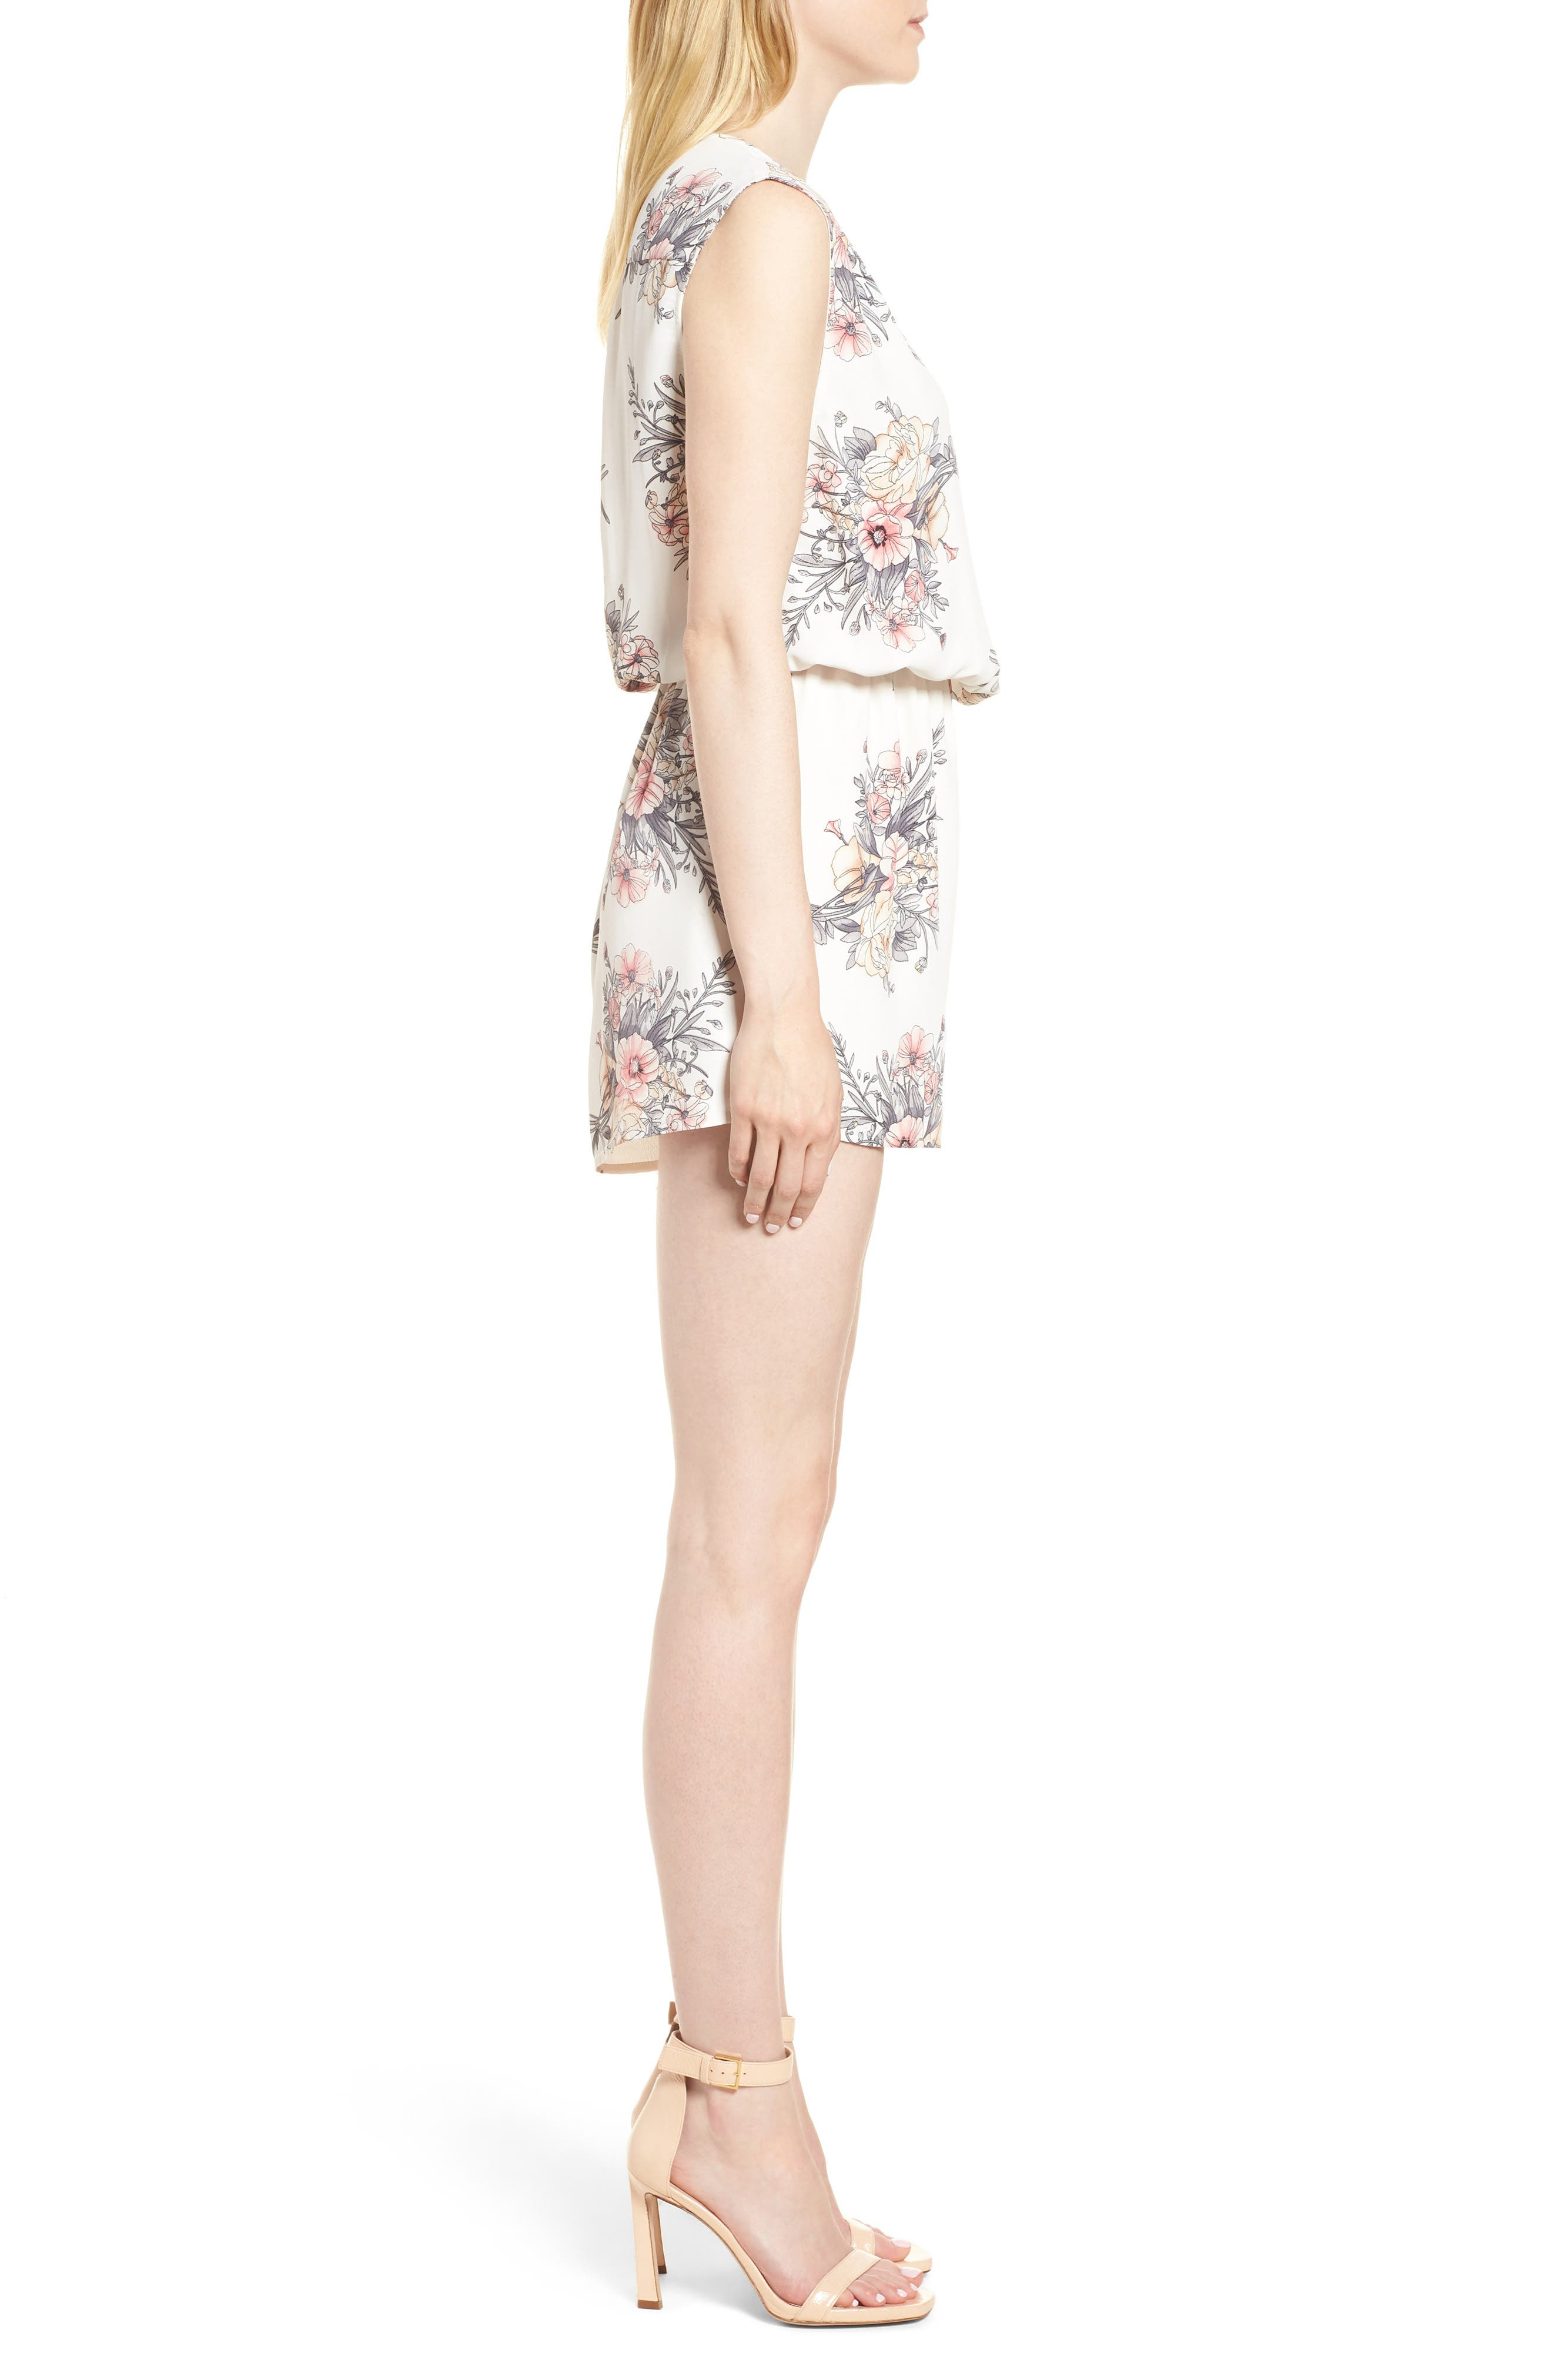 Bishop + Young Summer of Love Romper,                             Alternate thumbnail 3, color,                             Summer Of Love Print